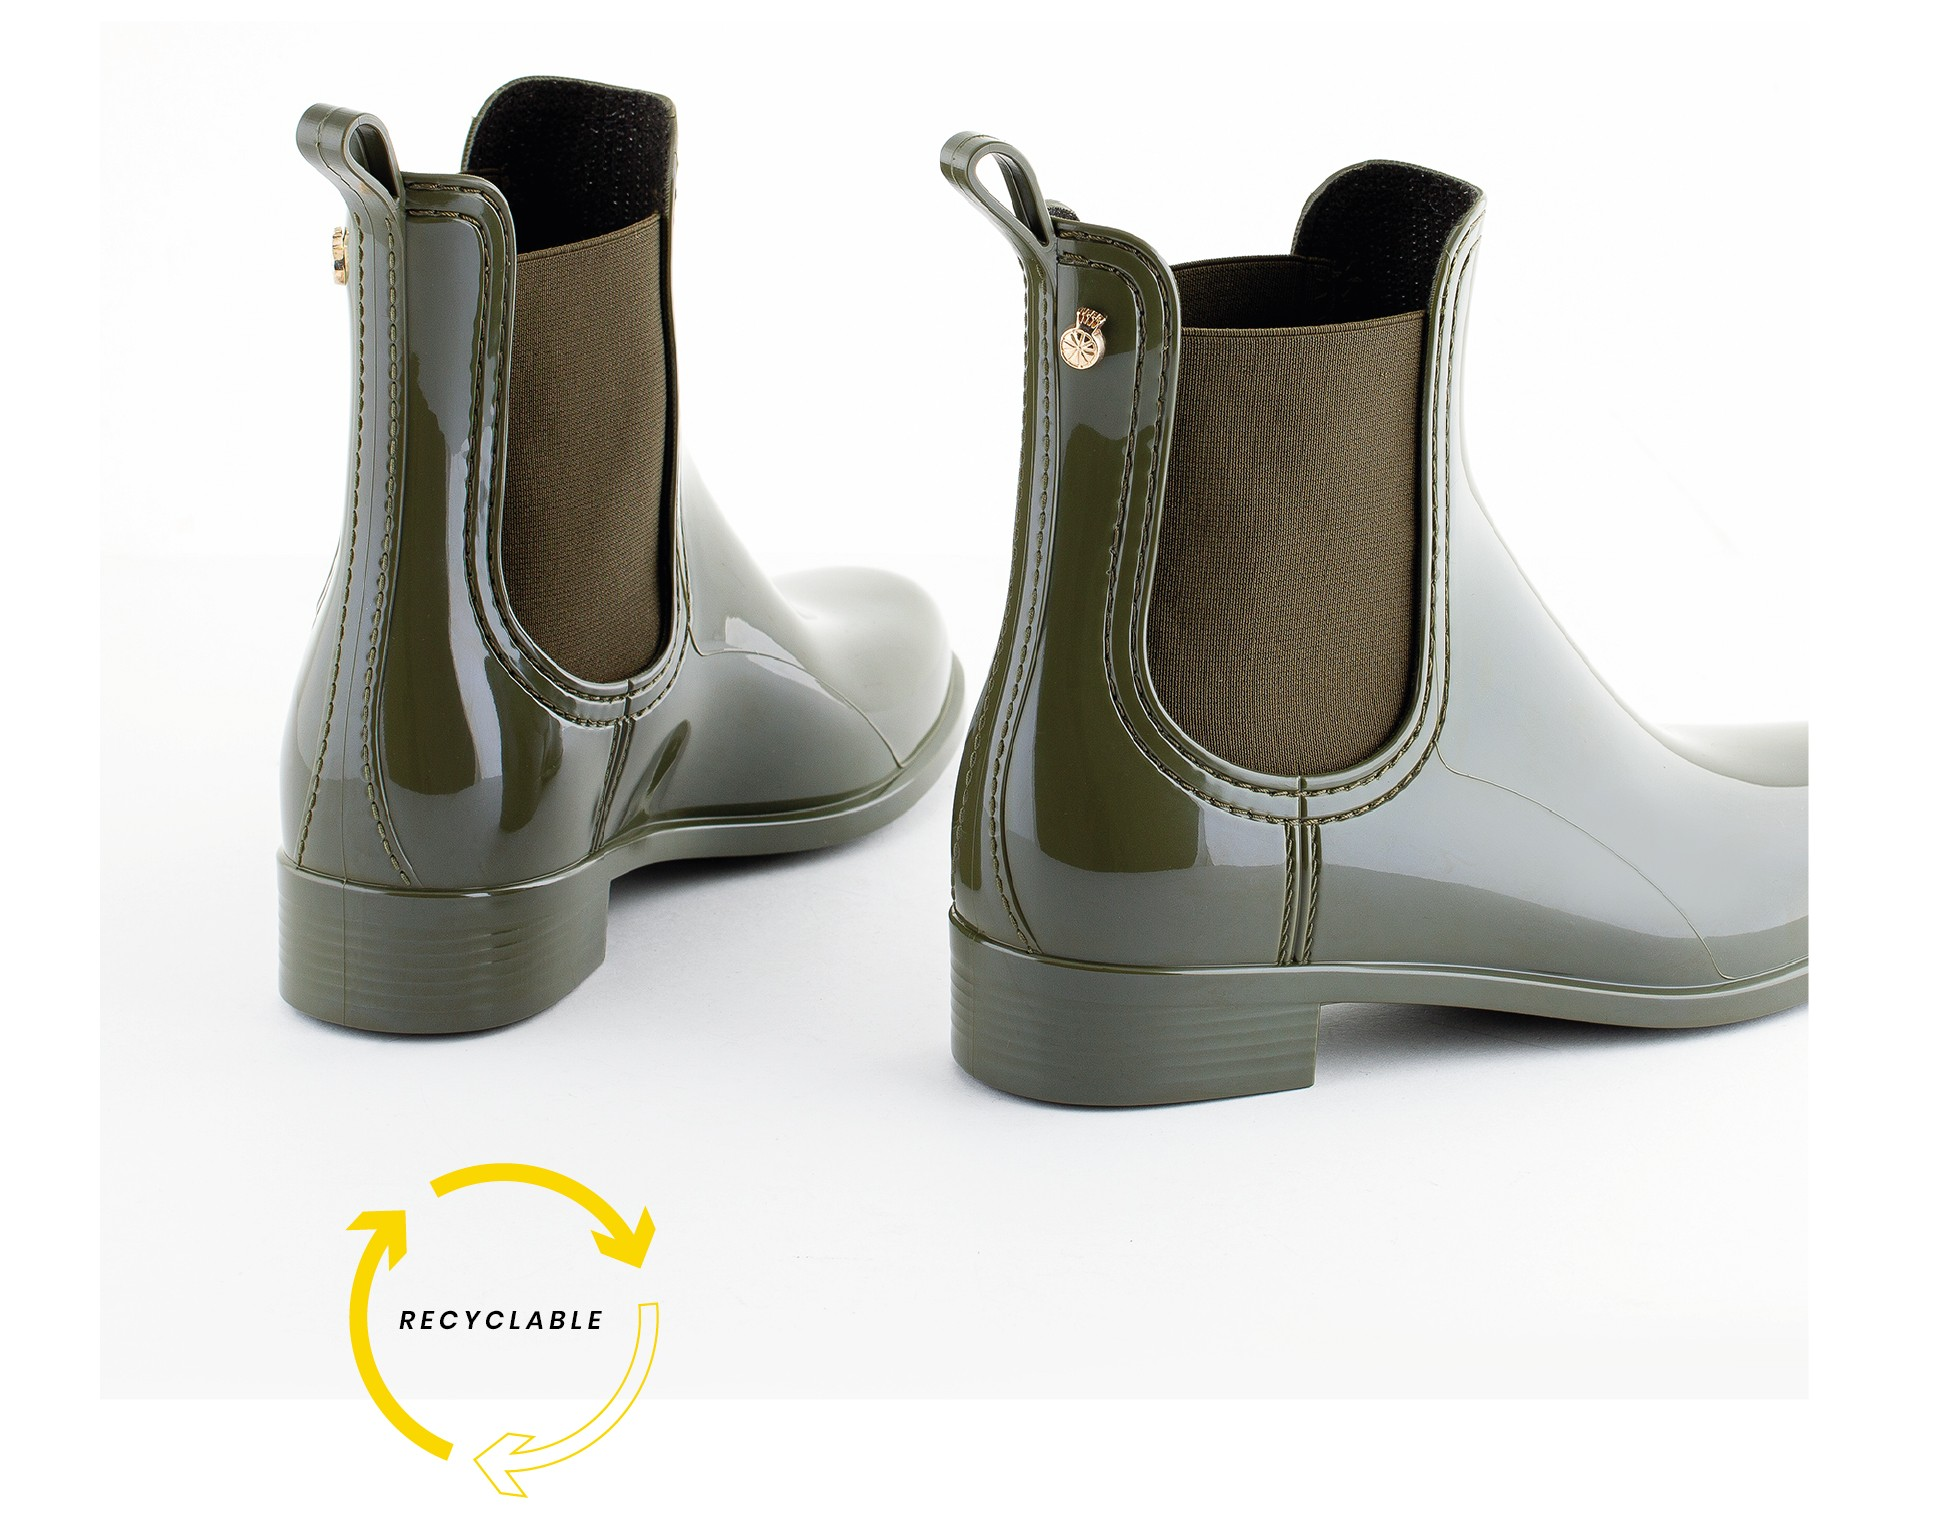 recycled and recyclable ankle boots